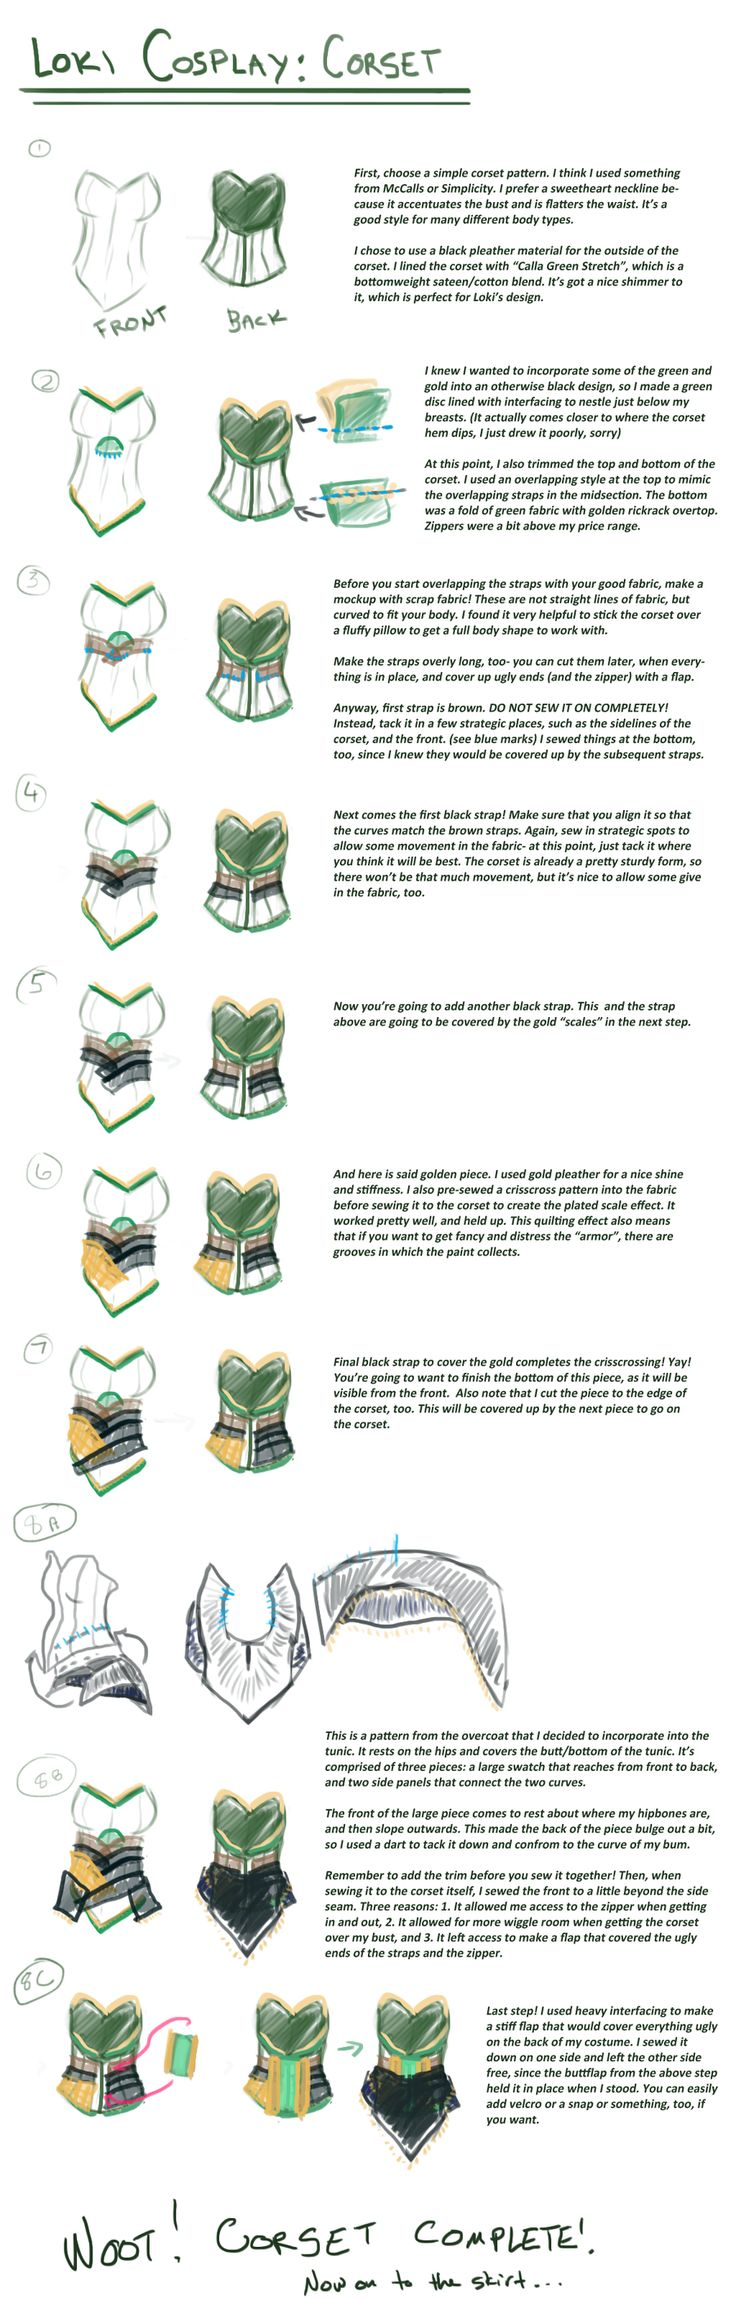 Loki cosplay guide: Corset by SirLadySketch.deviantart.com on @deviantART